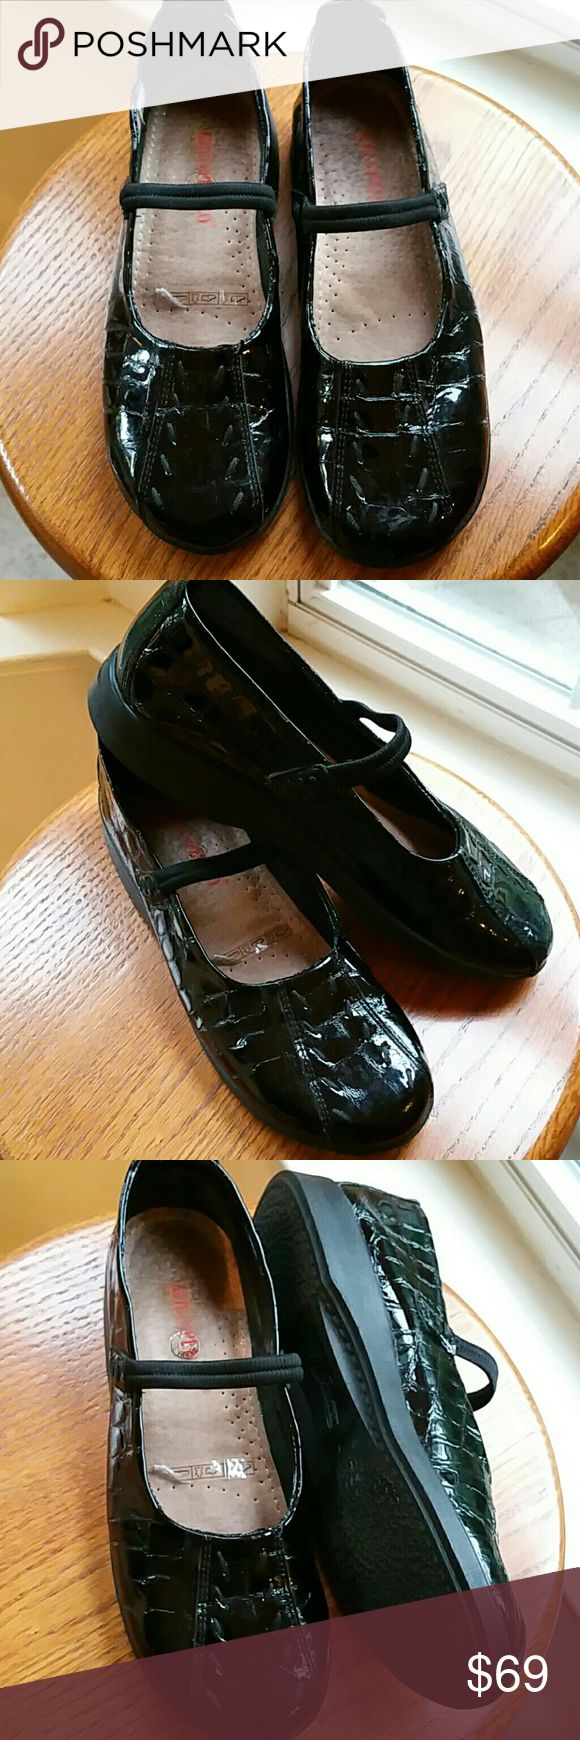 Arcopedico blk patent mary jane style shoes. 9.5 These are a very comfy looking shoe with lots of insole padding, elastic across the foot to hold onto shoe. A size 40 or a 9.5 size. They have s cute sole to them approz. An inch heel. Croc embossed patent leather. New. No box. Shows no signs of wear.. Arcopedico Shoes Flats & Loafers